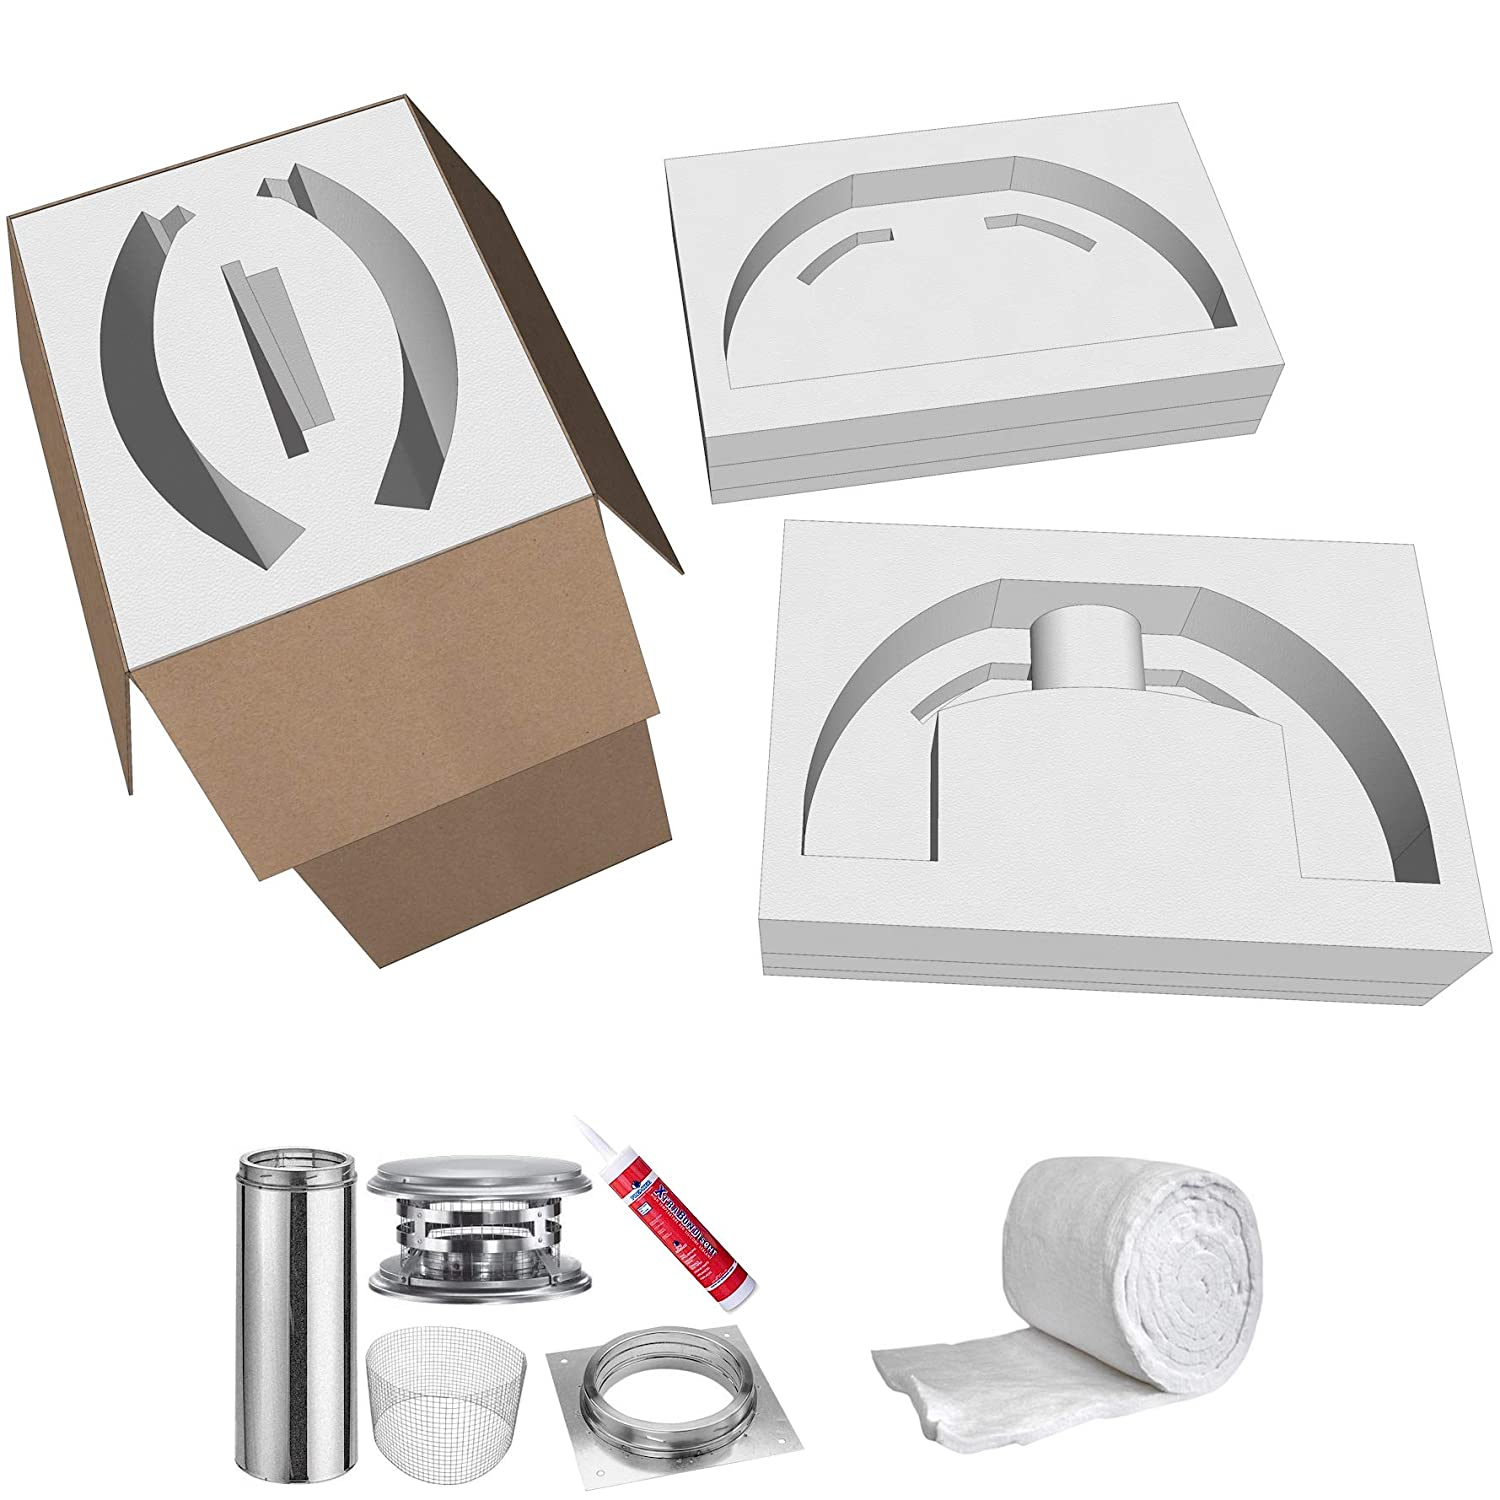 Pizza Oven Kit • Brick Oven - Build a Wood Fired Pizza Oven from Refractory Cement and Our 5-Piece Cortile Barile Pizza Oven Molds • Stainless Fibers • DuraTech Exhaust • Ceramic Fiber Blanket